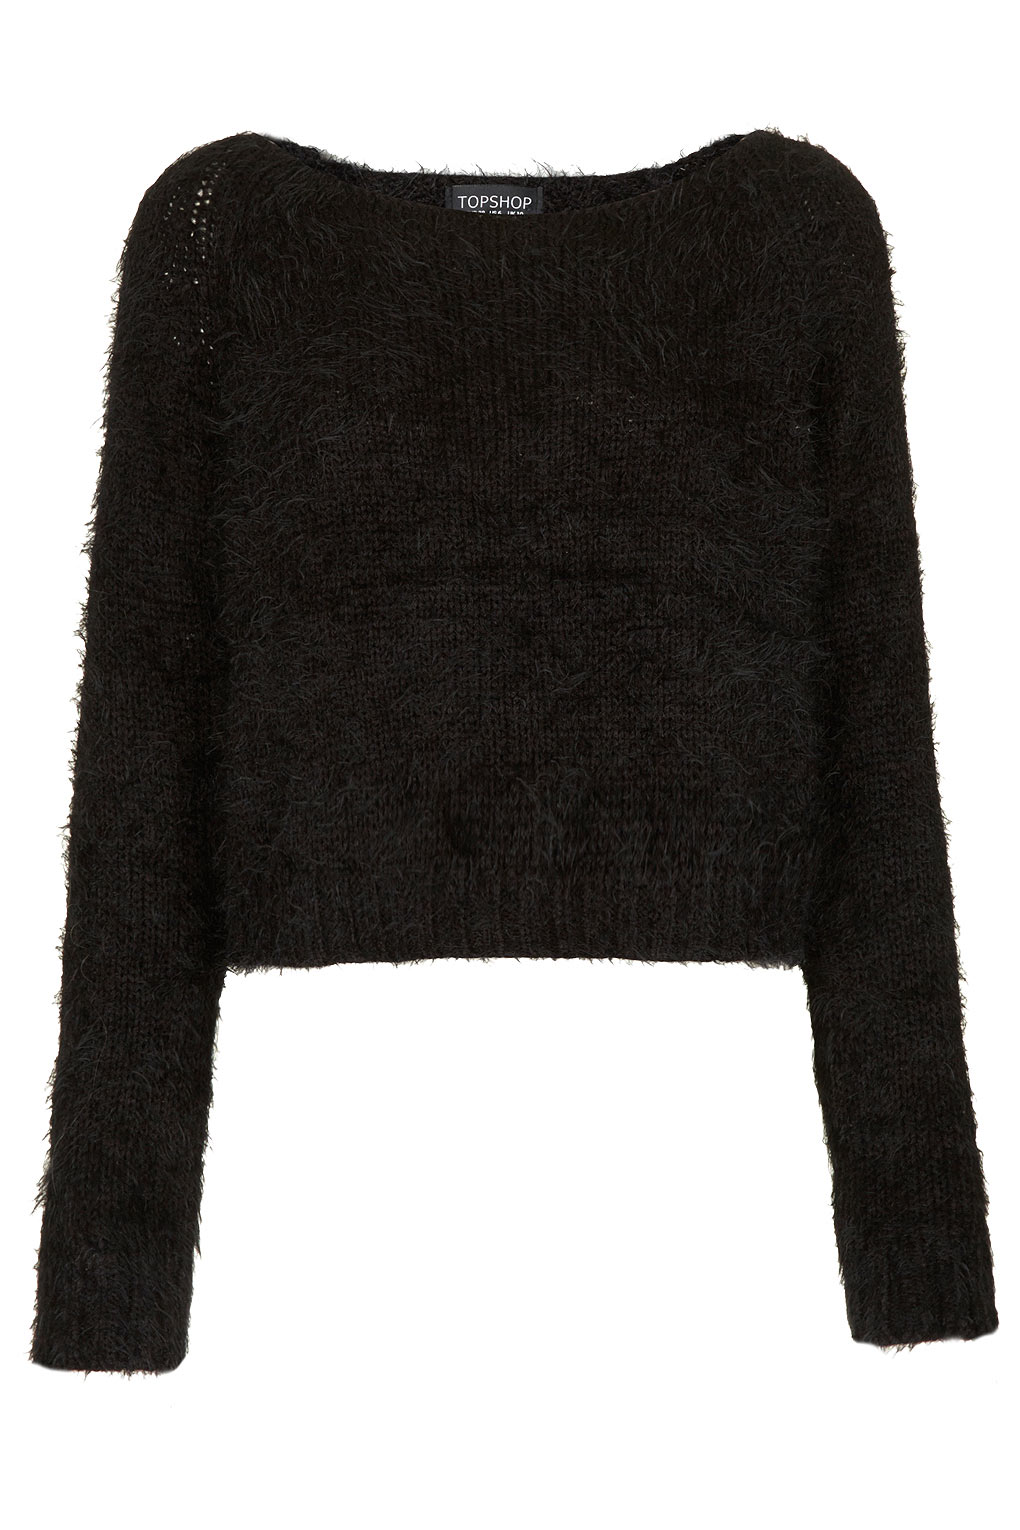 Knitting Pattern Fluffy Jumper : Topshop Knitted Fluffy Crop in Black Lyst